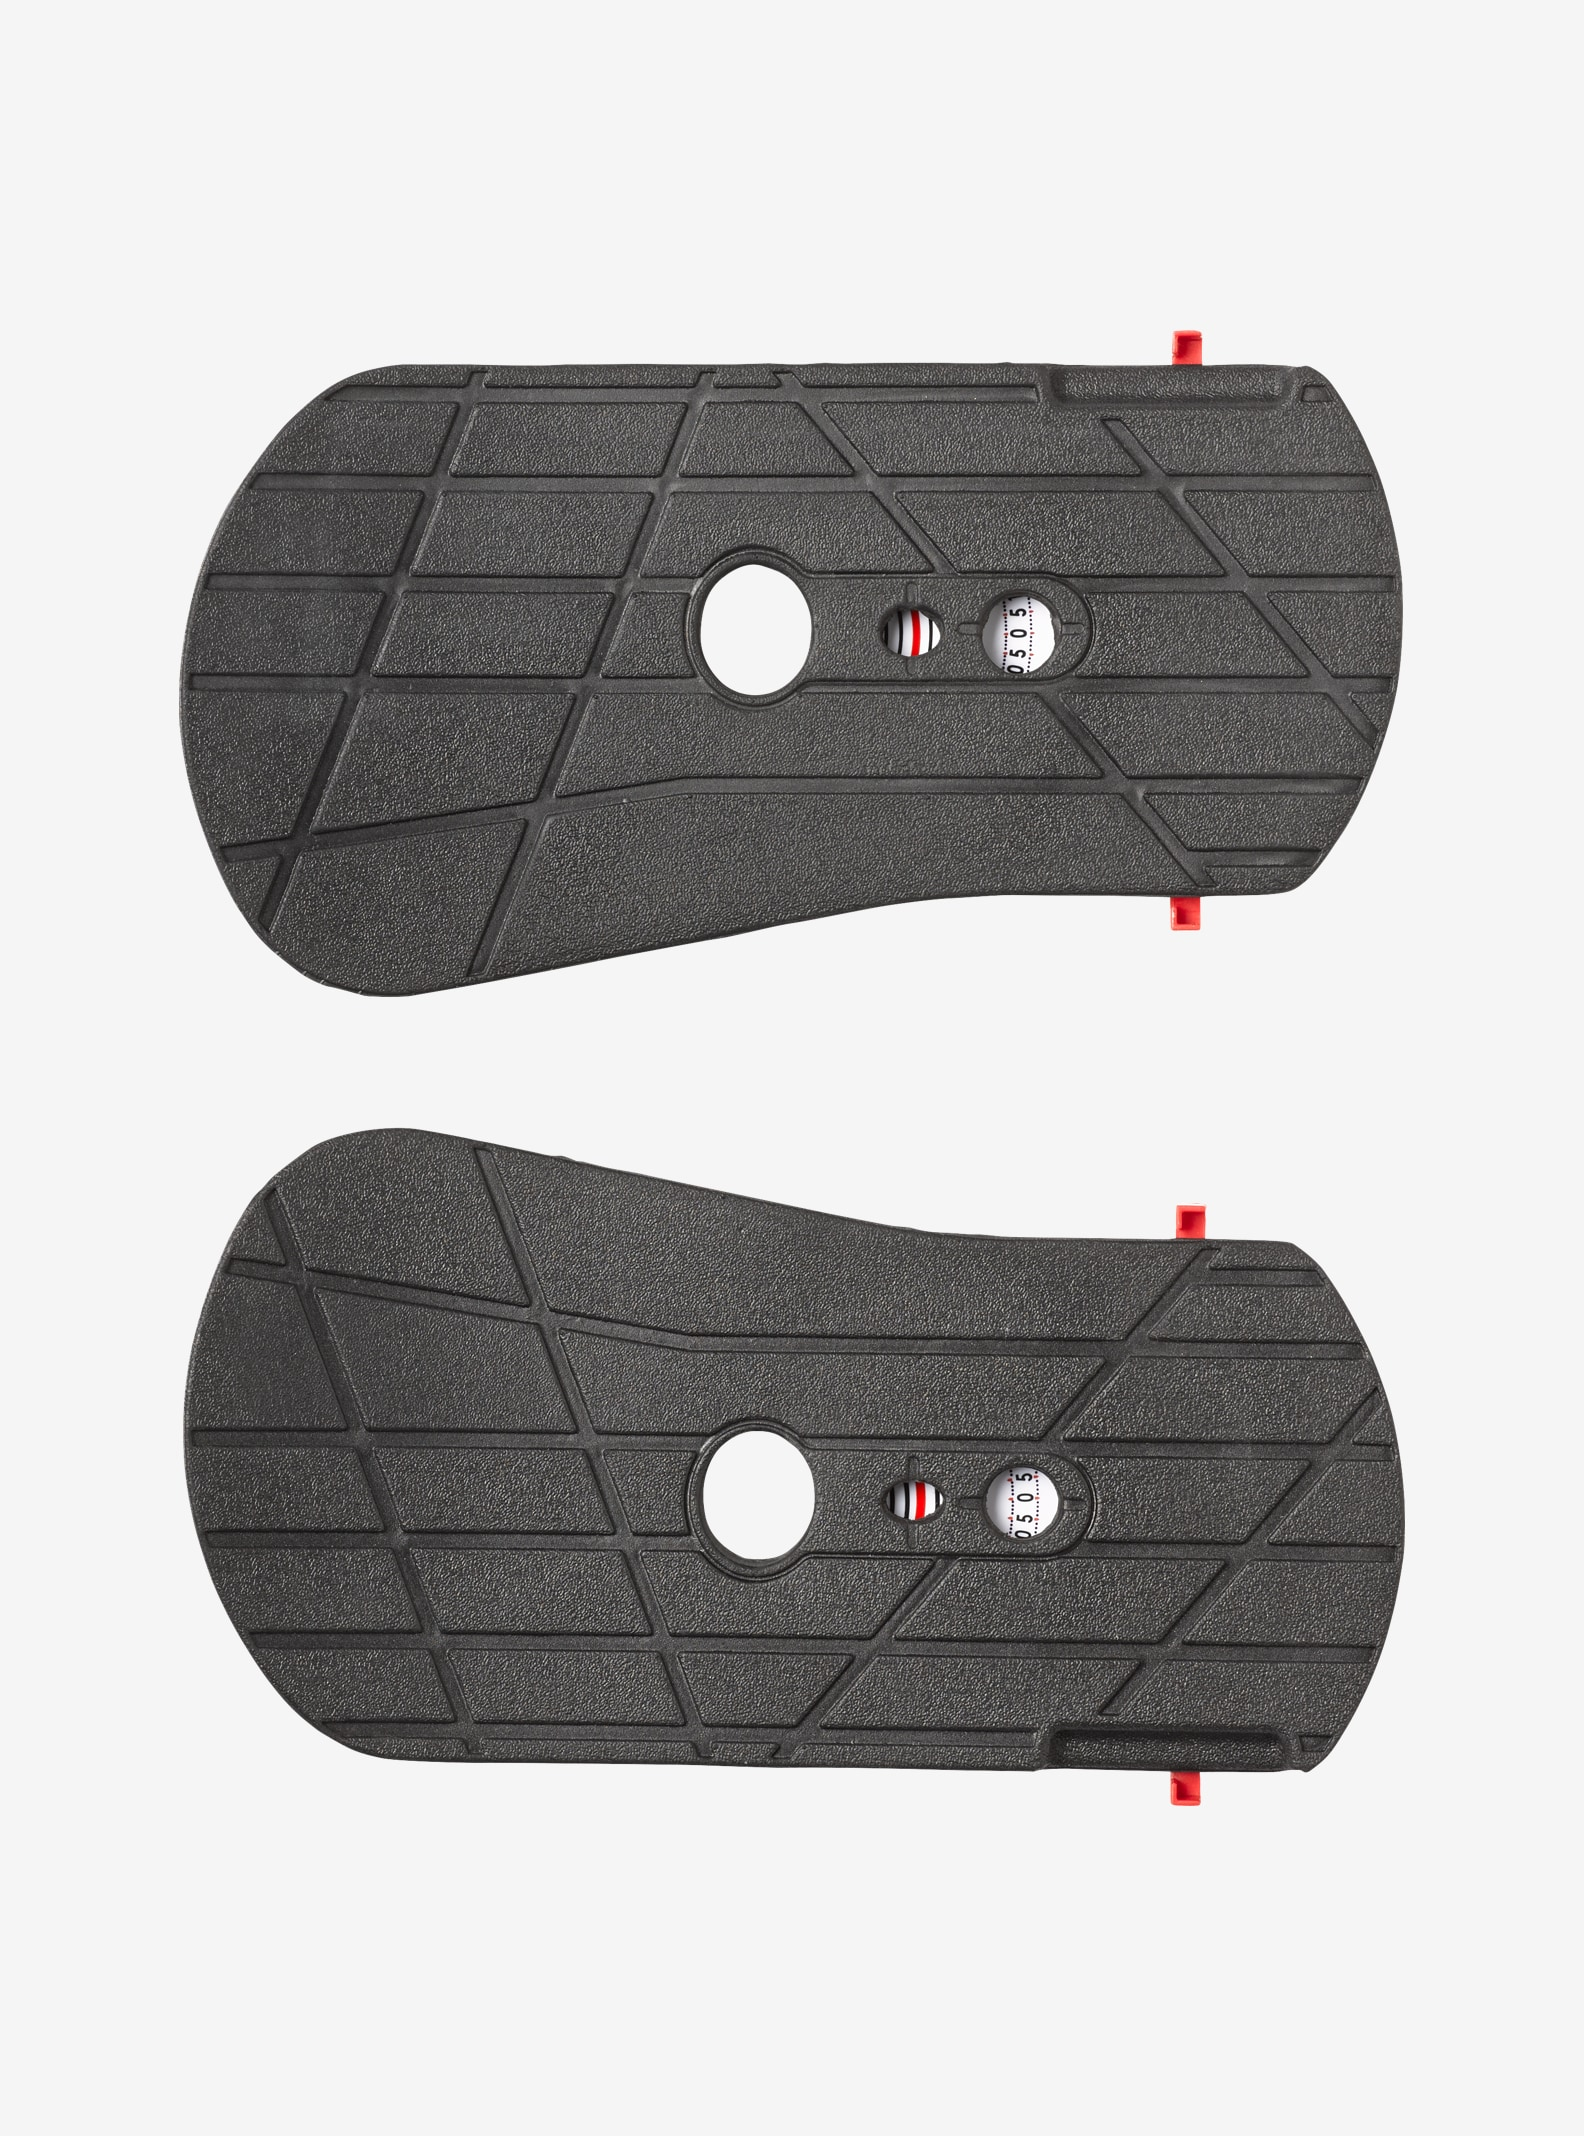 Burton CantBED 2.0 shown in Black